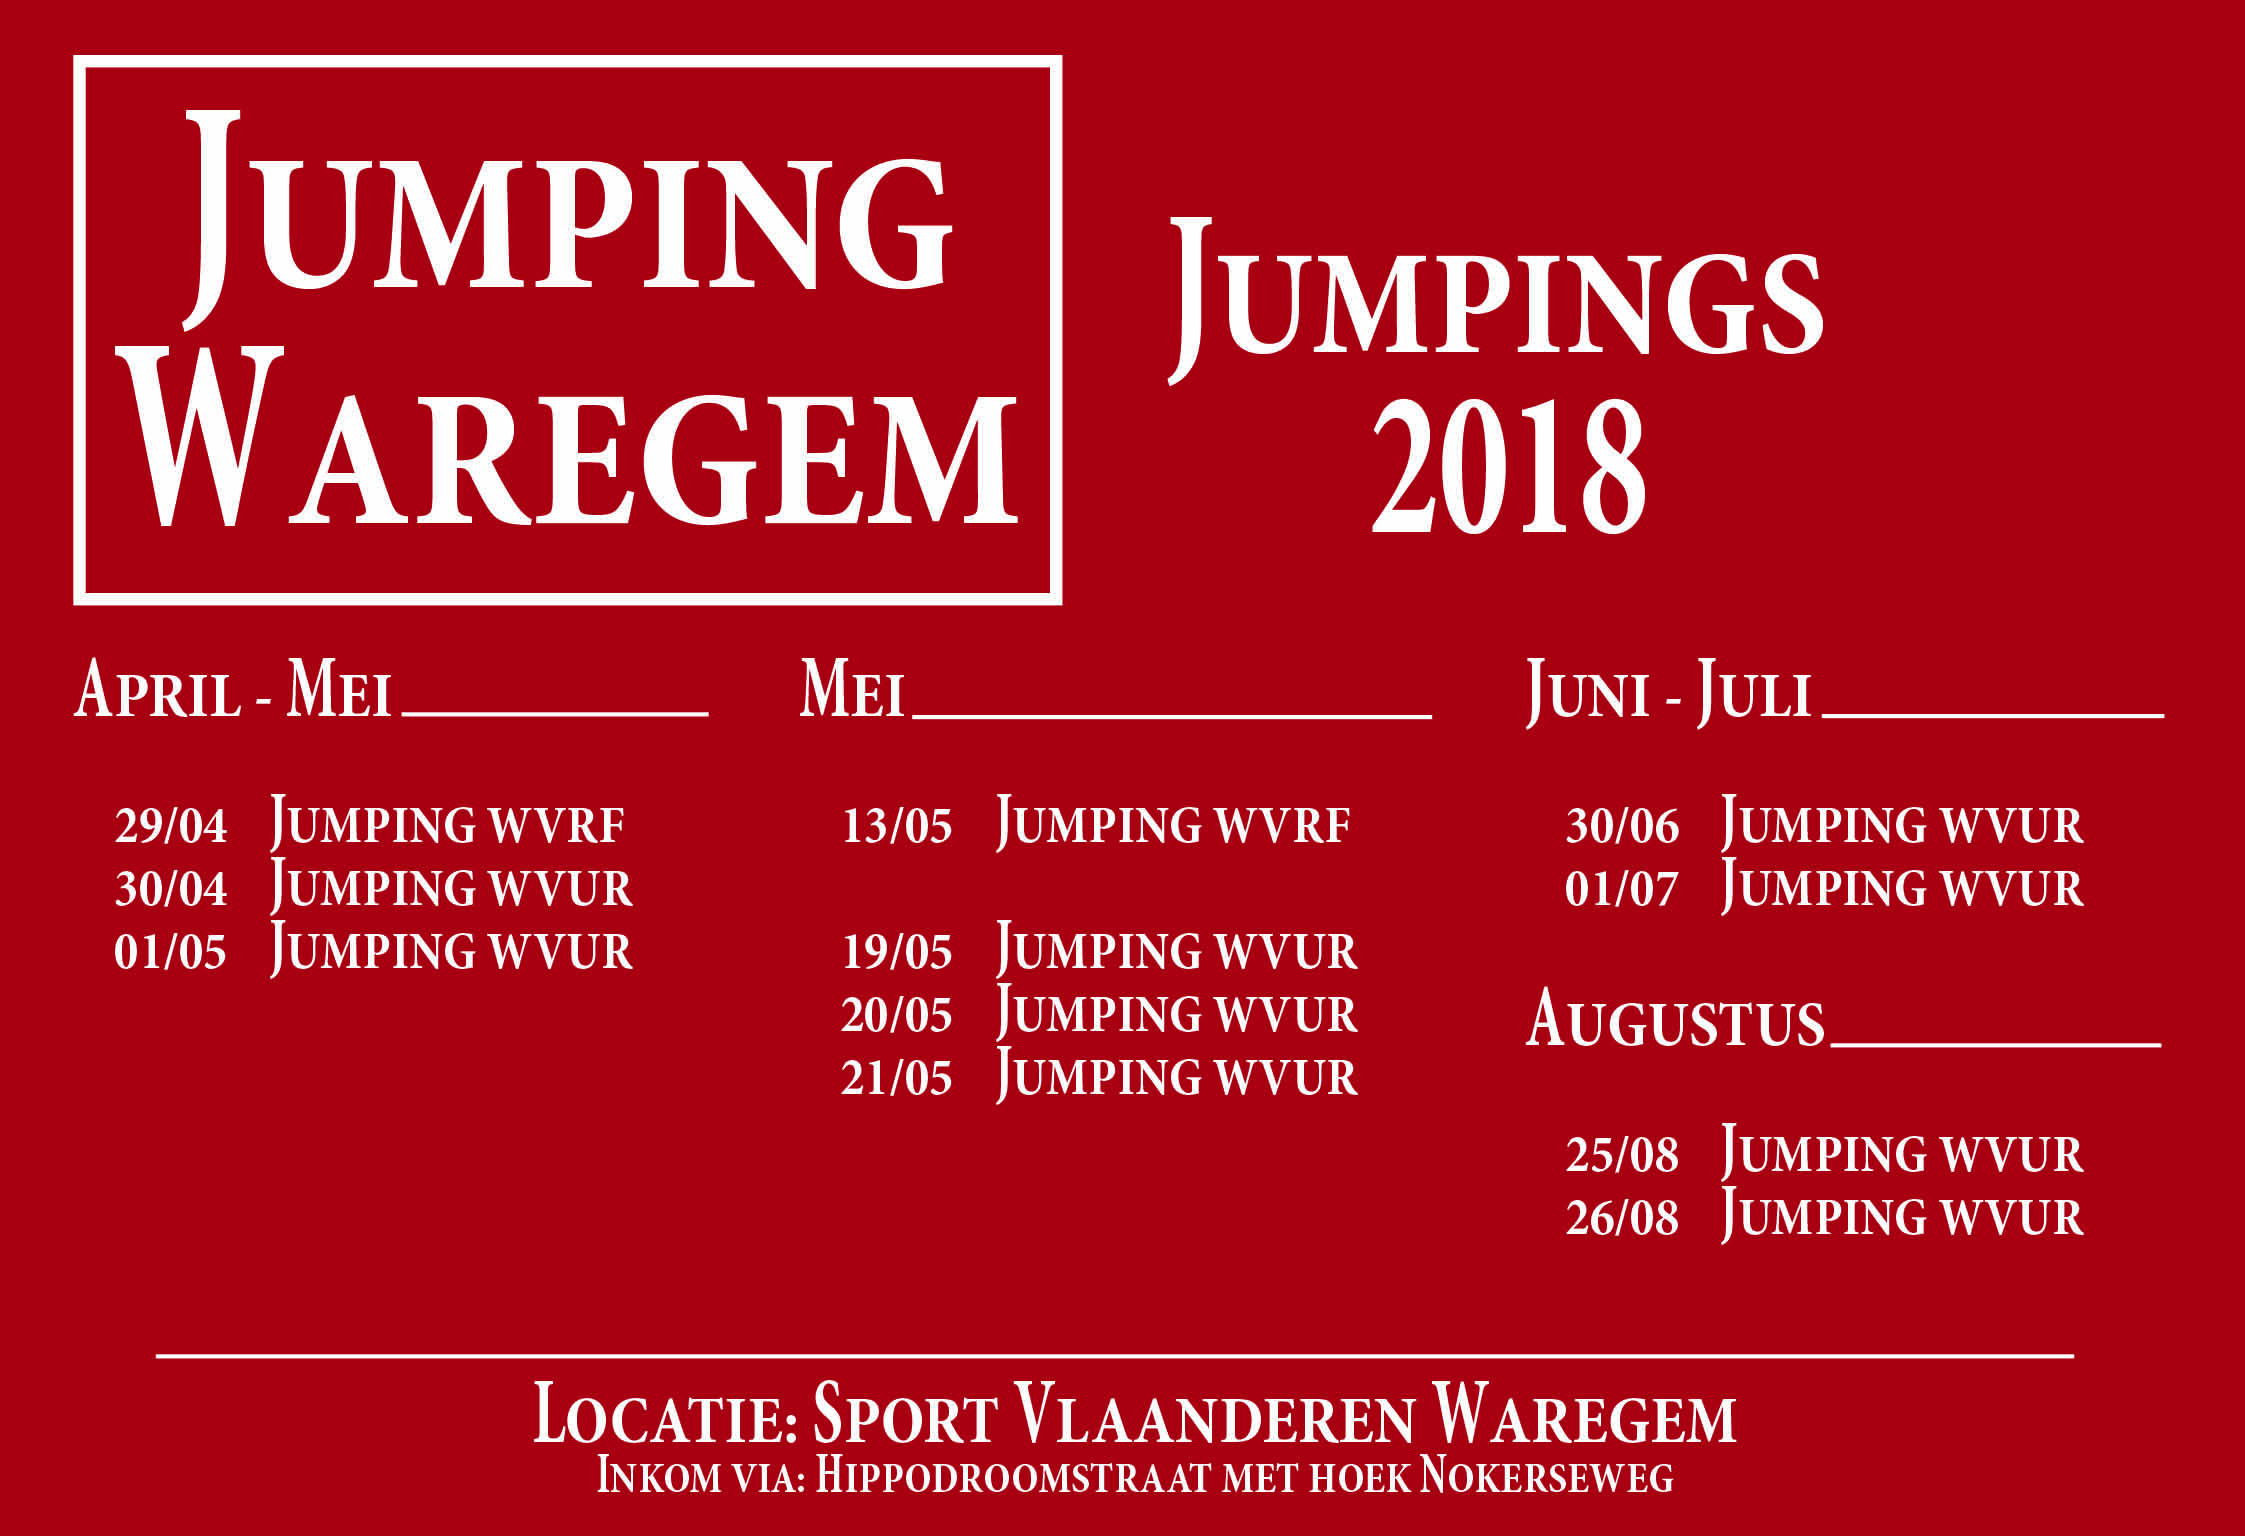 jumpings 2018 website